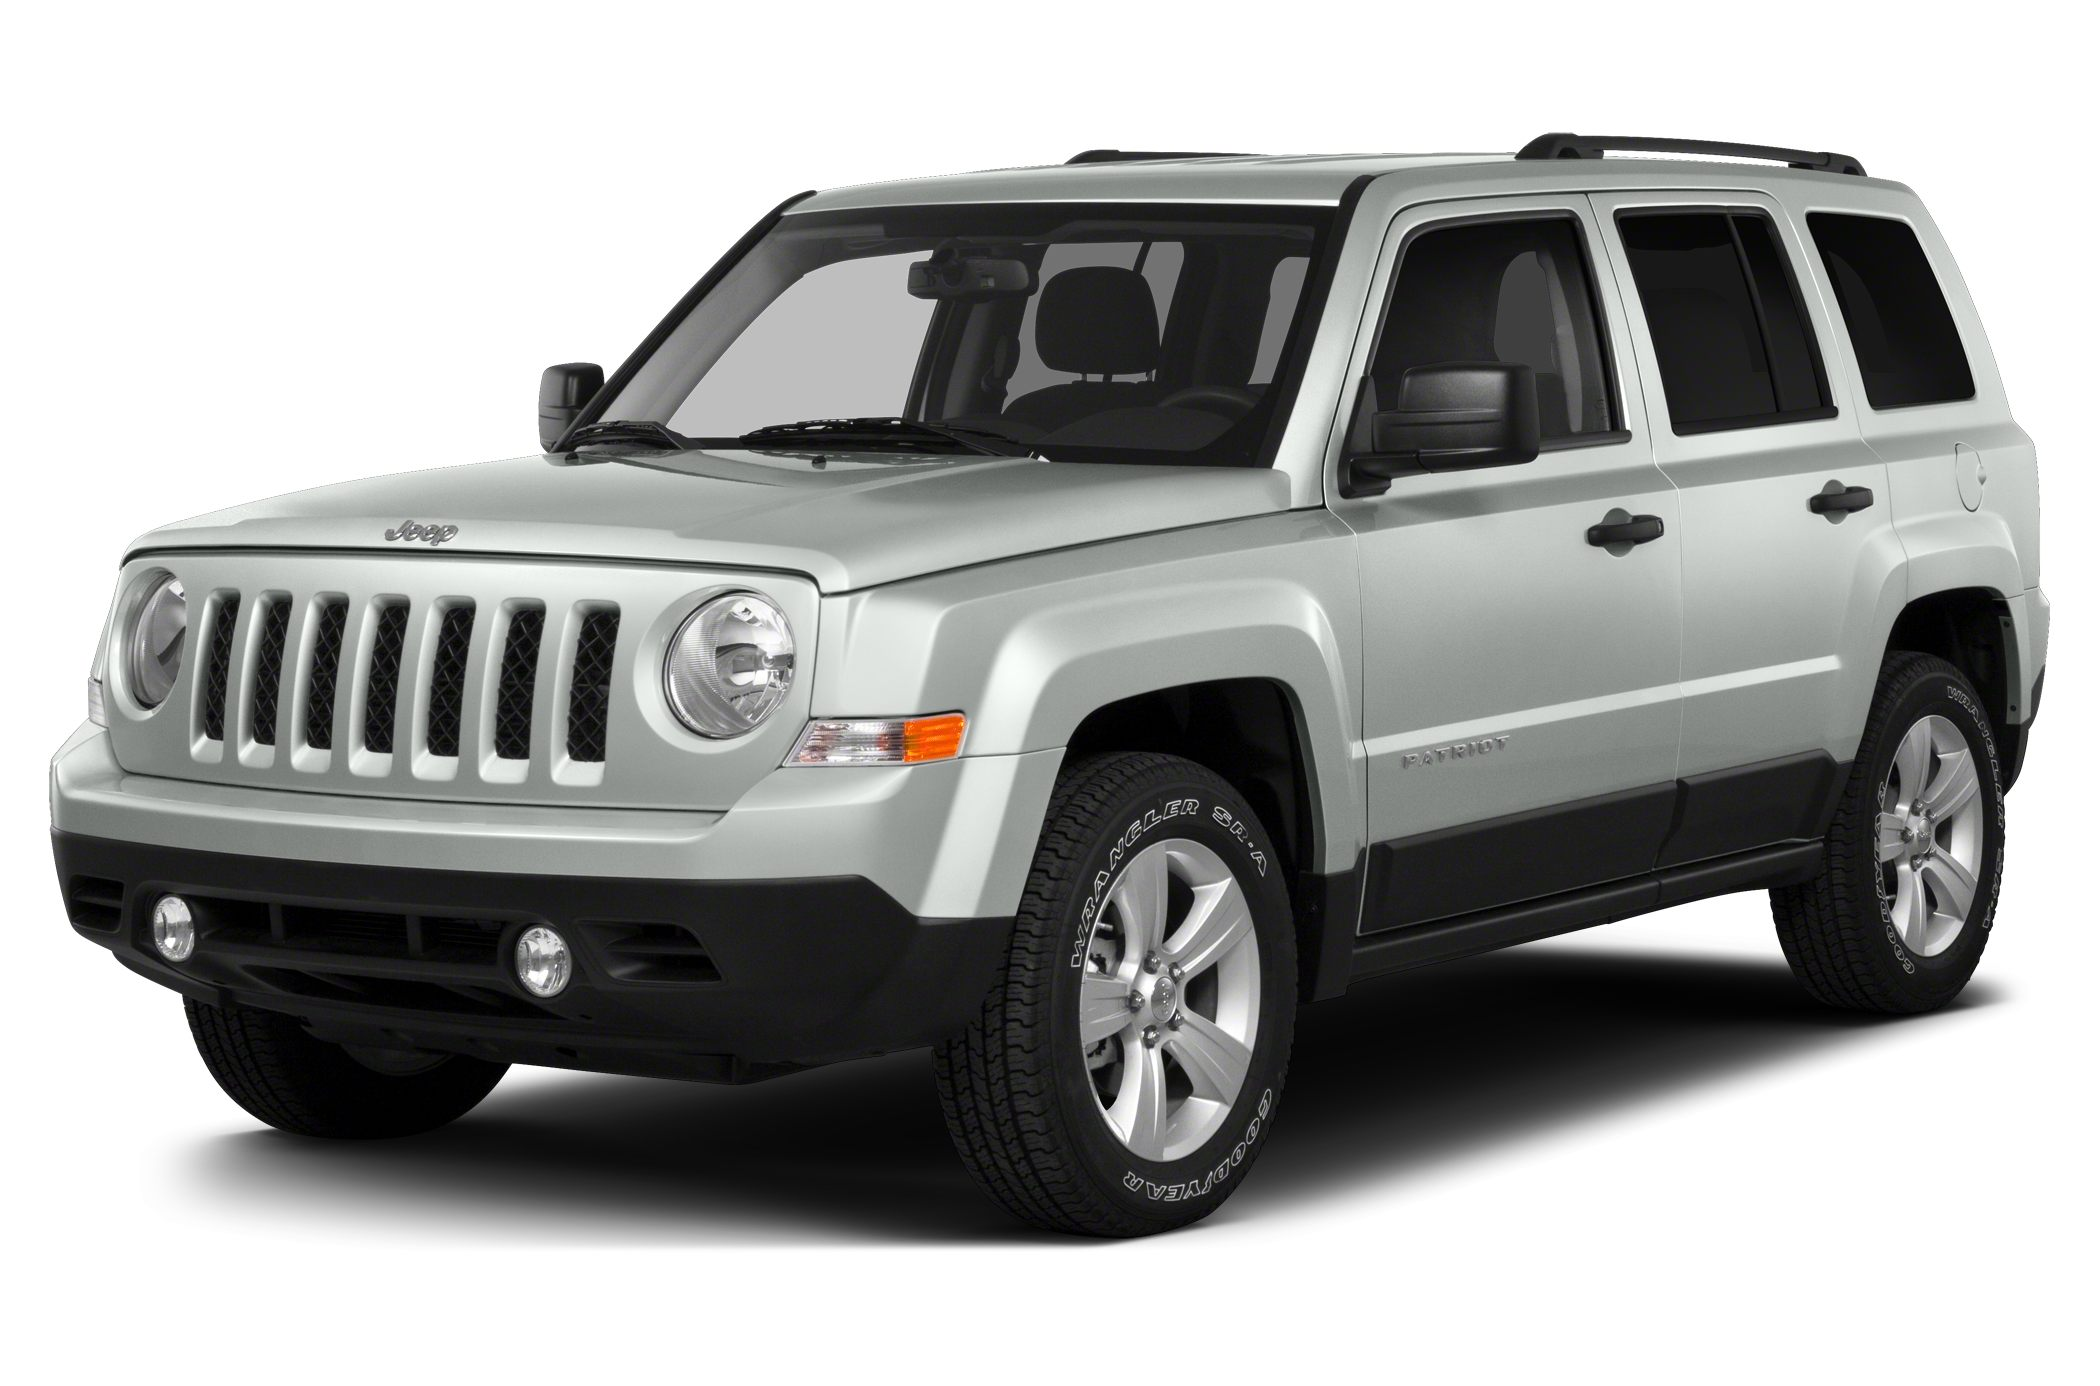 2015 Jeep Patriot Sport SUV for sale in Scranton for $21,365 with 0 miles